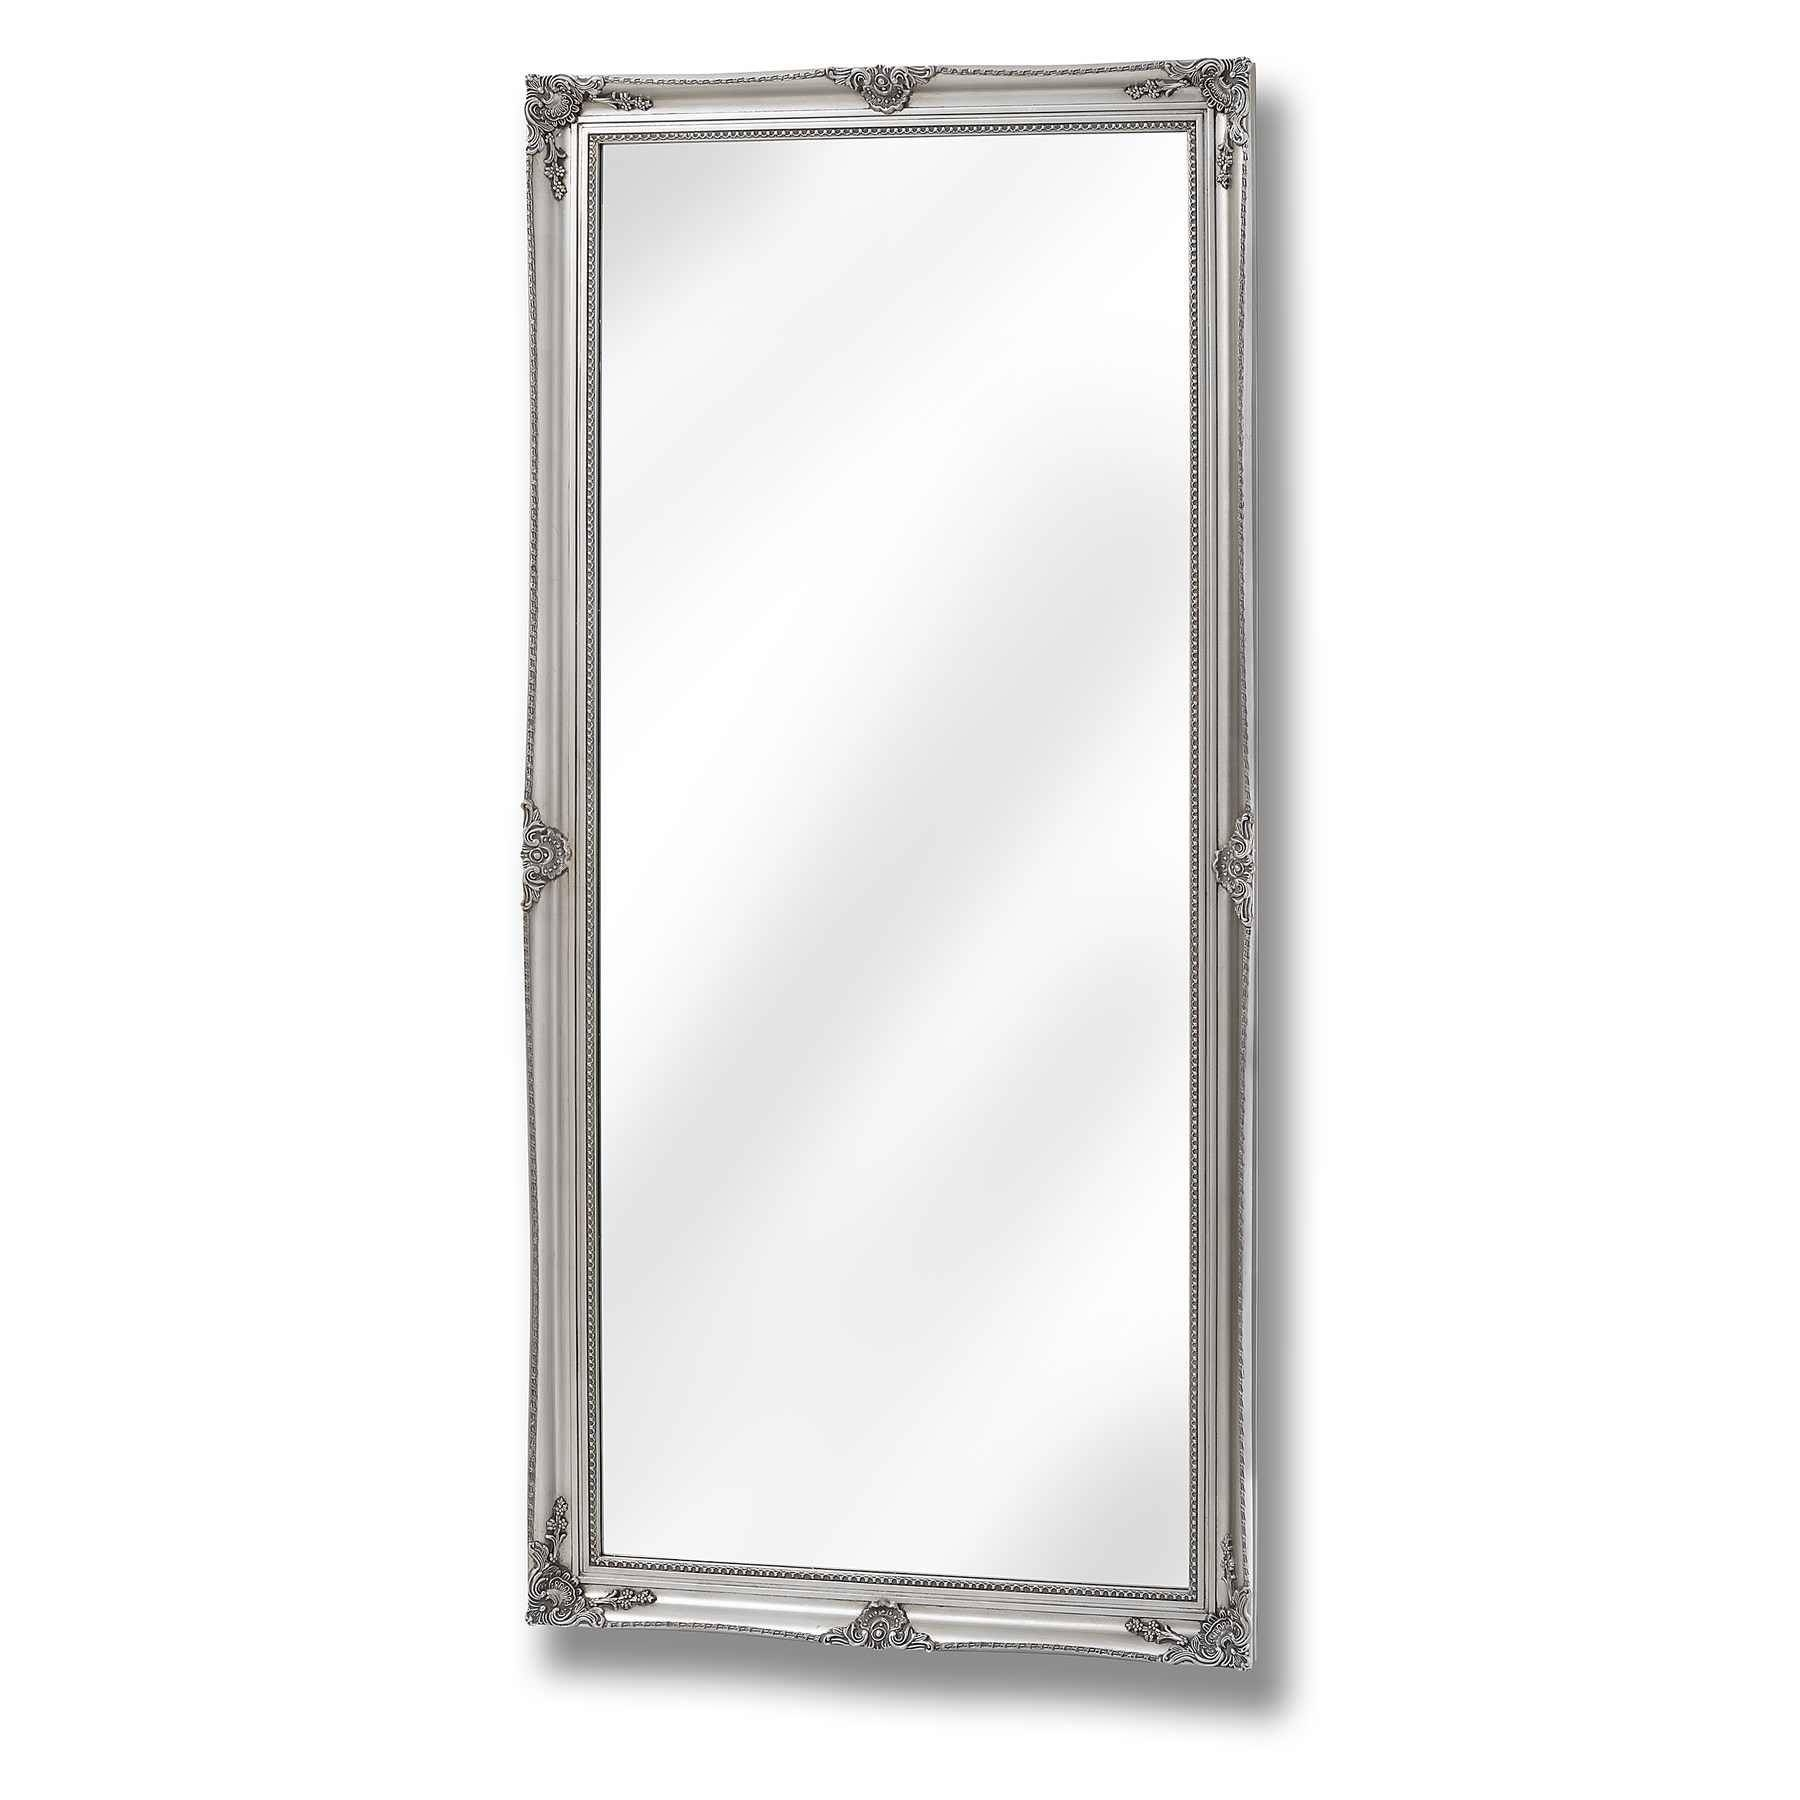 Baroque Antique Silver Full Length Mirror throughout Silver Full Length Mirrors (Image 2 of 15)